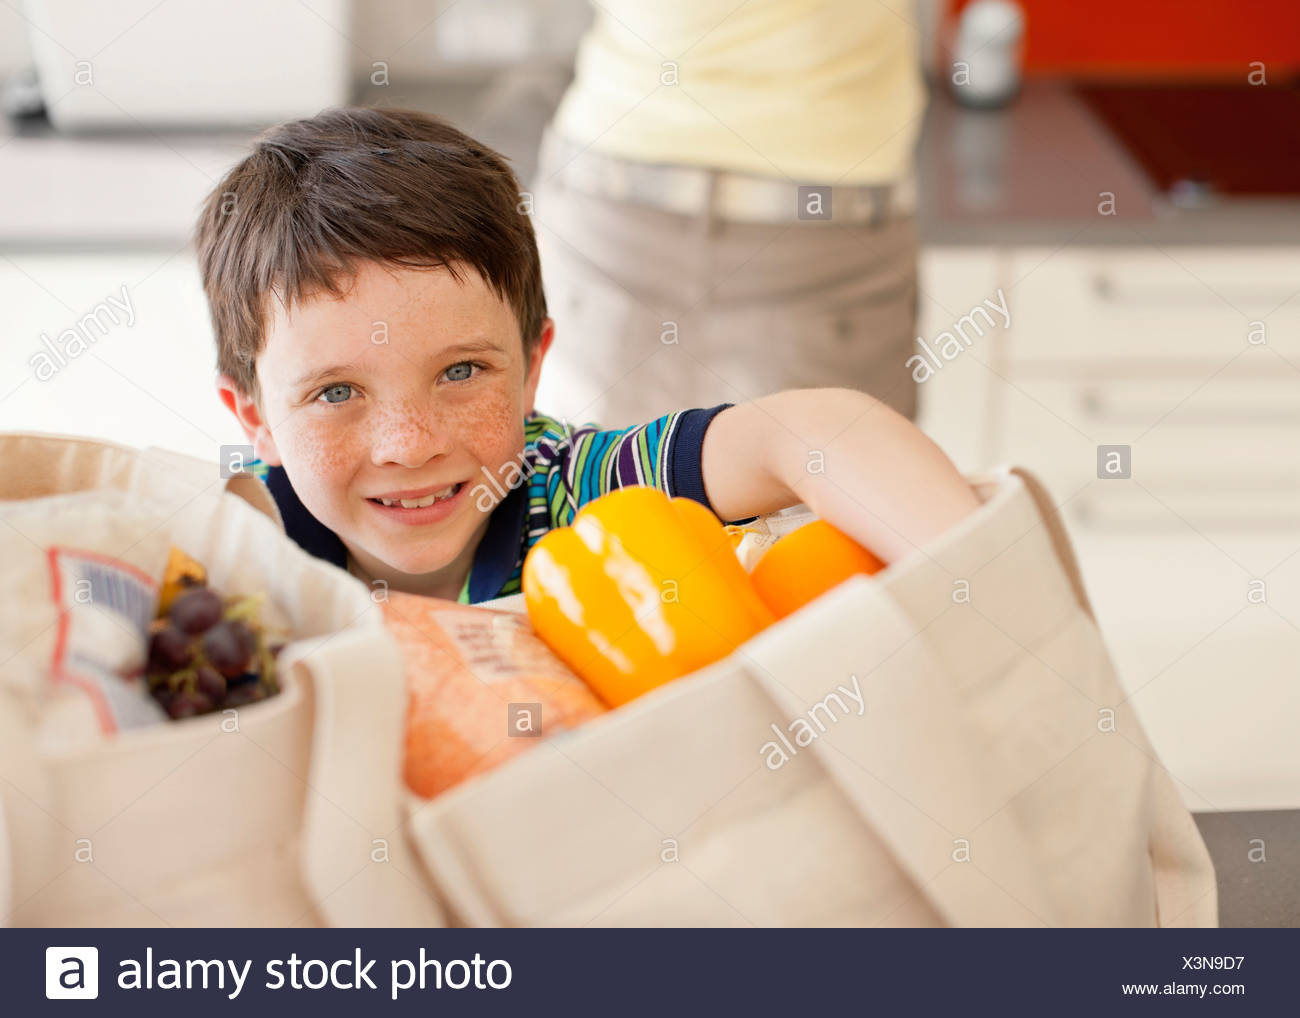 Boy unloading groceries from reusable bag - Stock Image